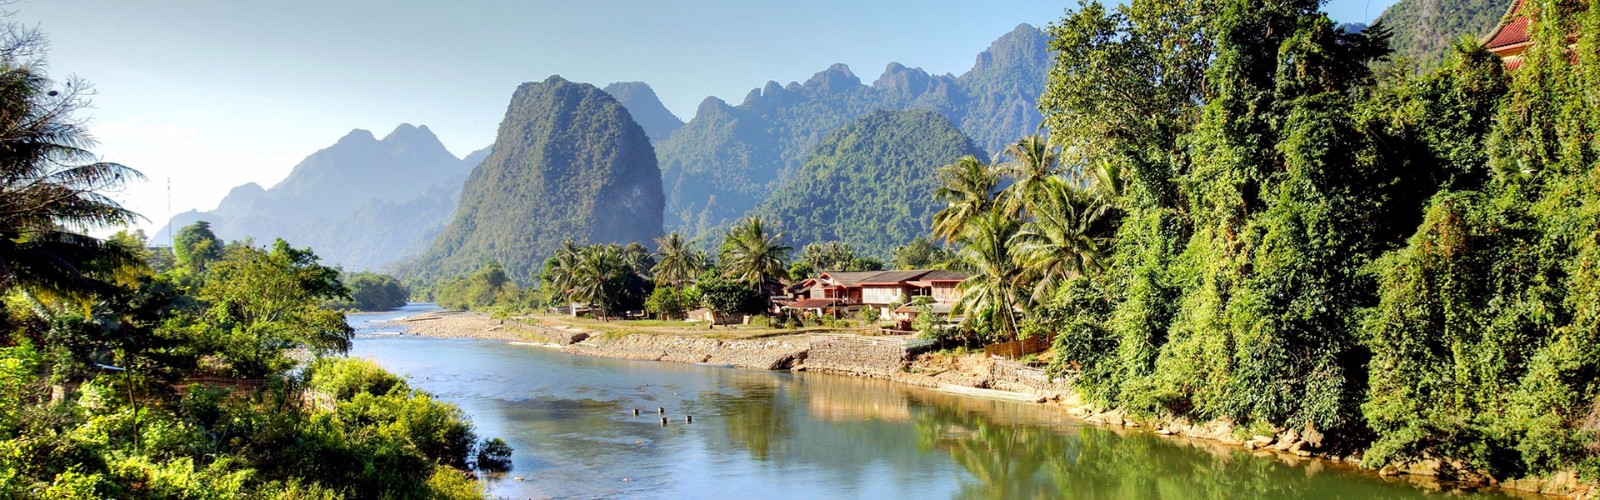 Highlights of Laos Tour | Wendy Wu Tours